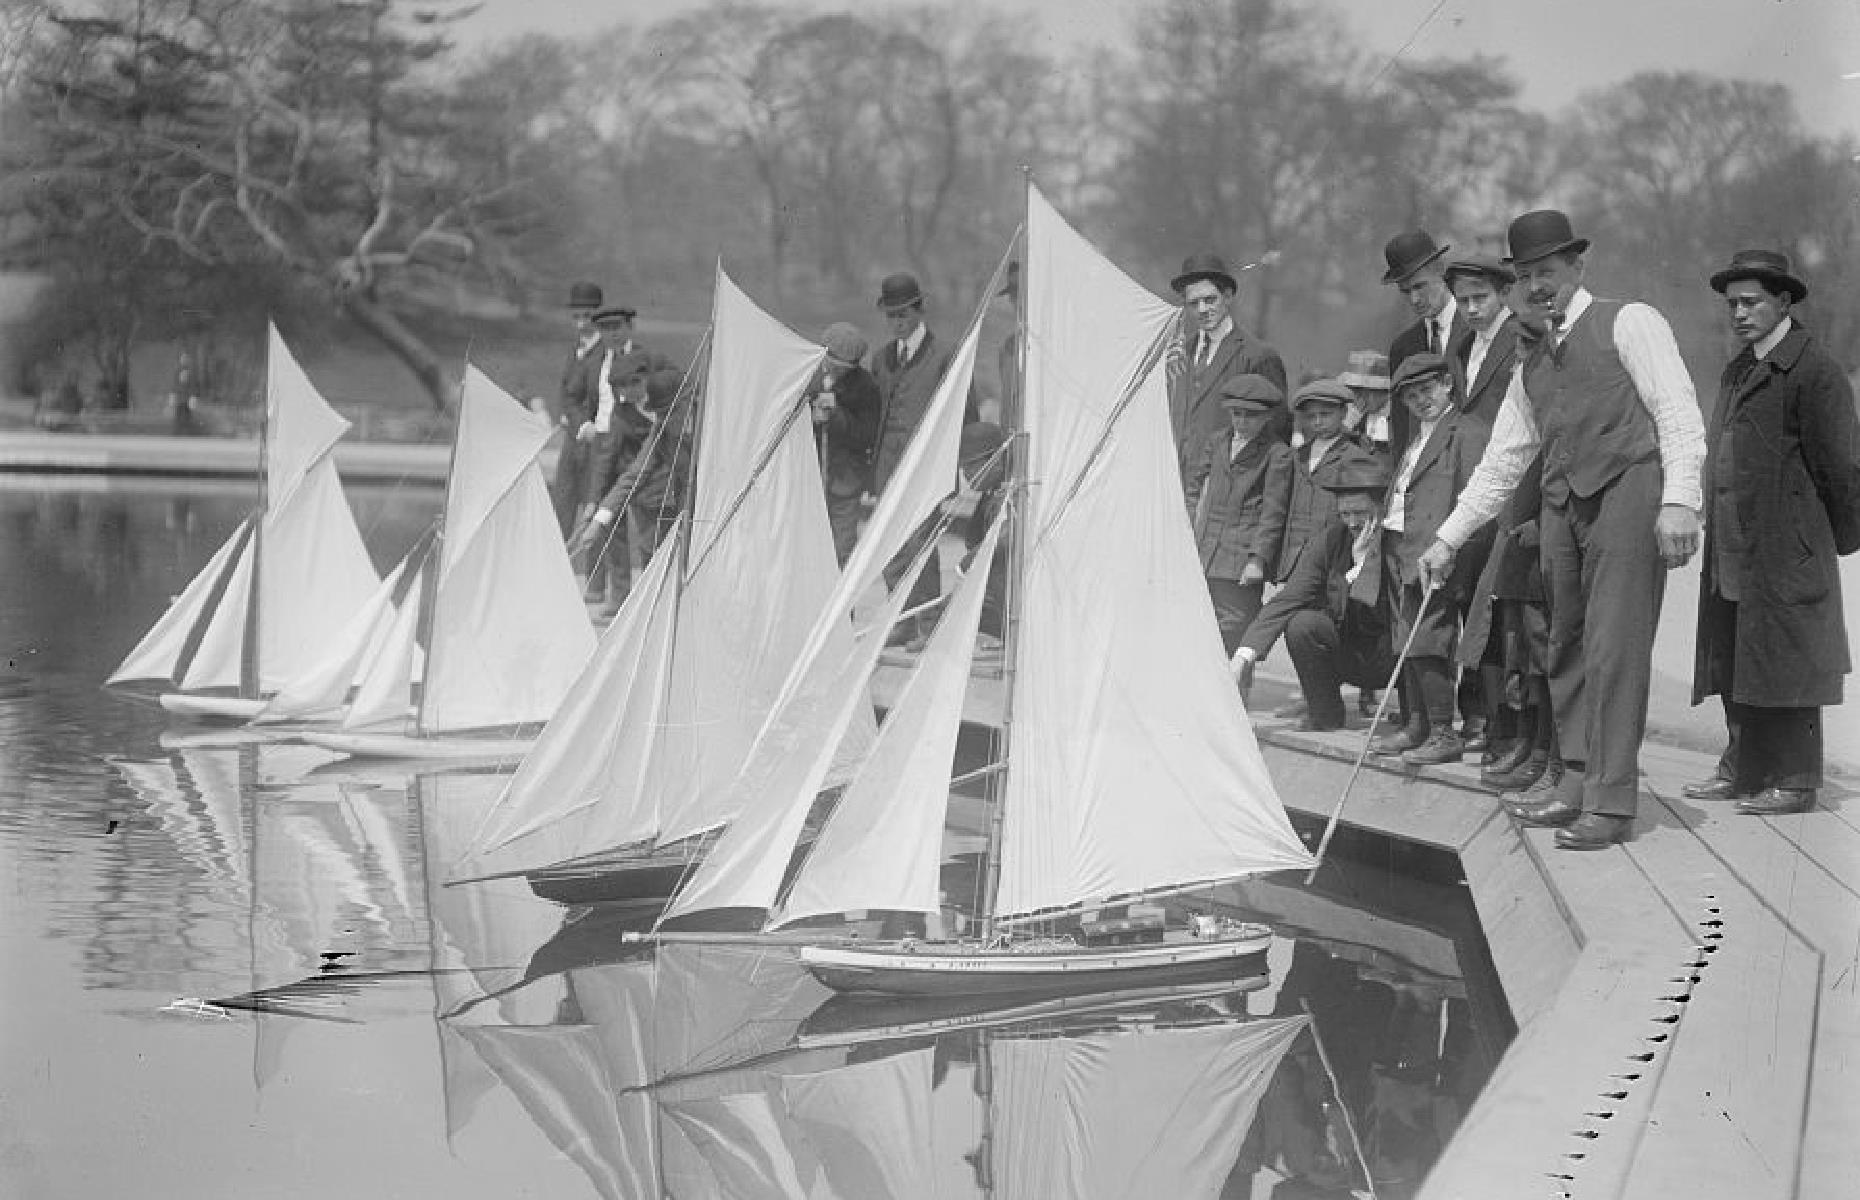 Slide 18 of 47: There's a long history of model yacht racing in Central Park too – in fact, the Central Park Model Yacht Club celebrated its 100th birthday back in 2016. The sport became particularly popular from the 1880s and remains so today –competitors are pictured here around 1910, getting ready to race their yachts on Conservatory Lake.